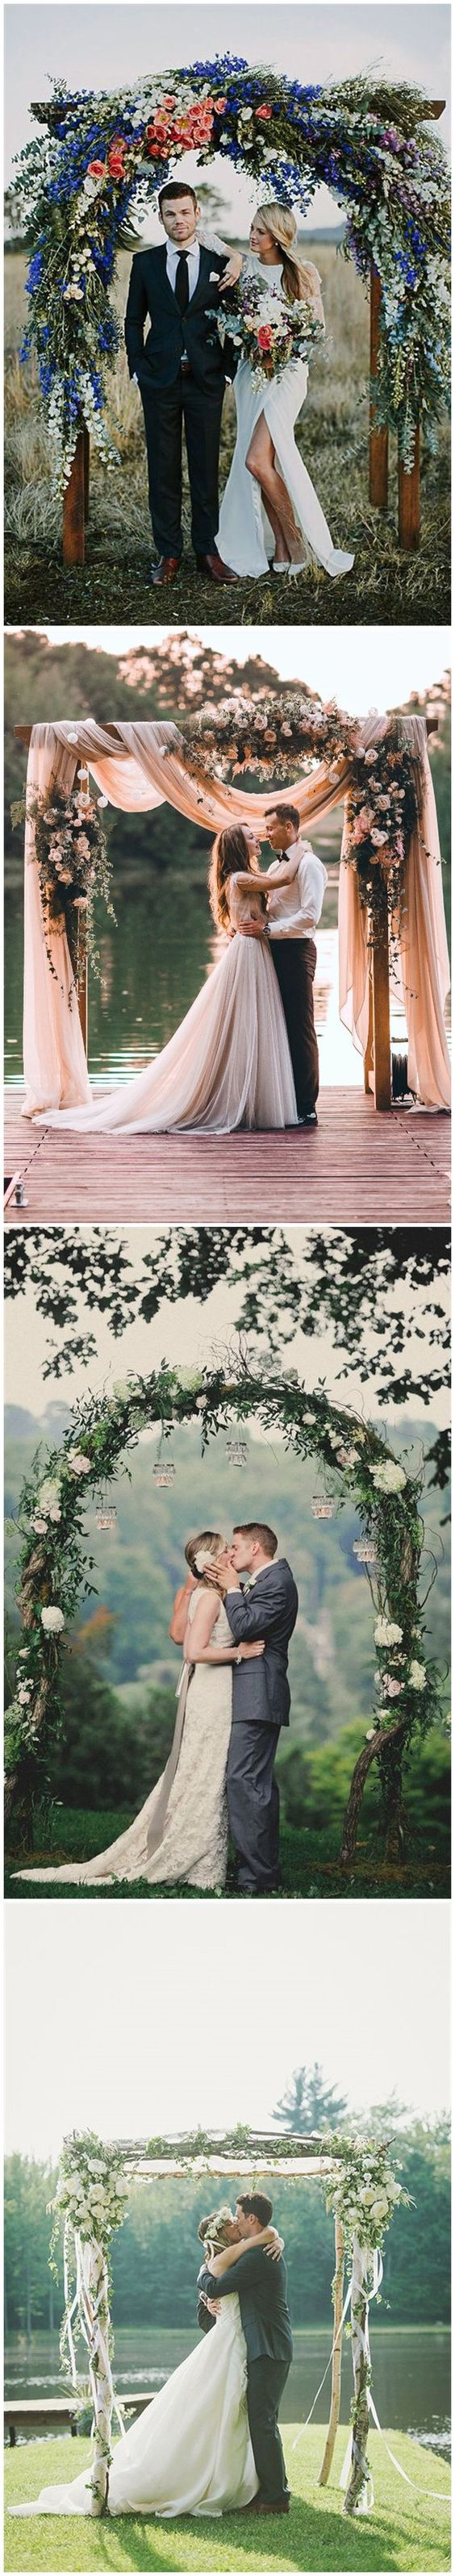 DIY Floral Wedding Arch Decoration Ideas 1